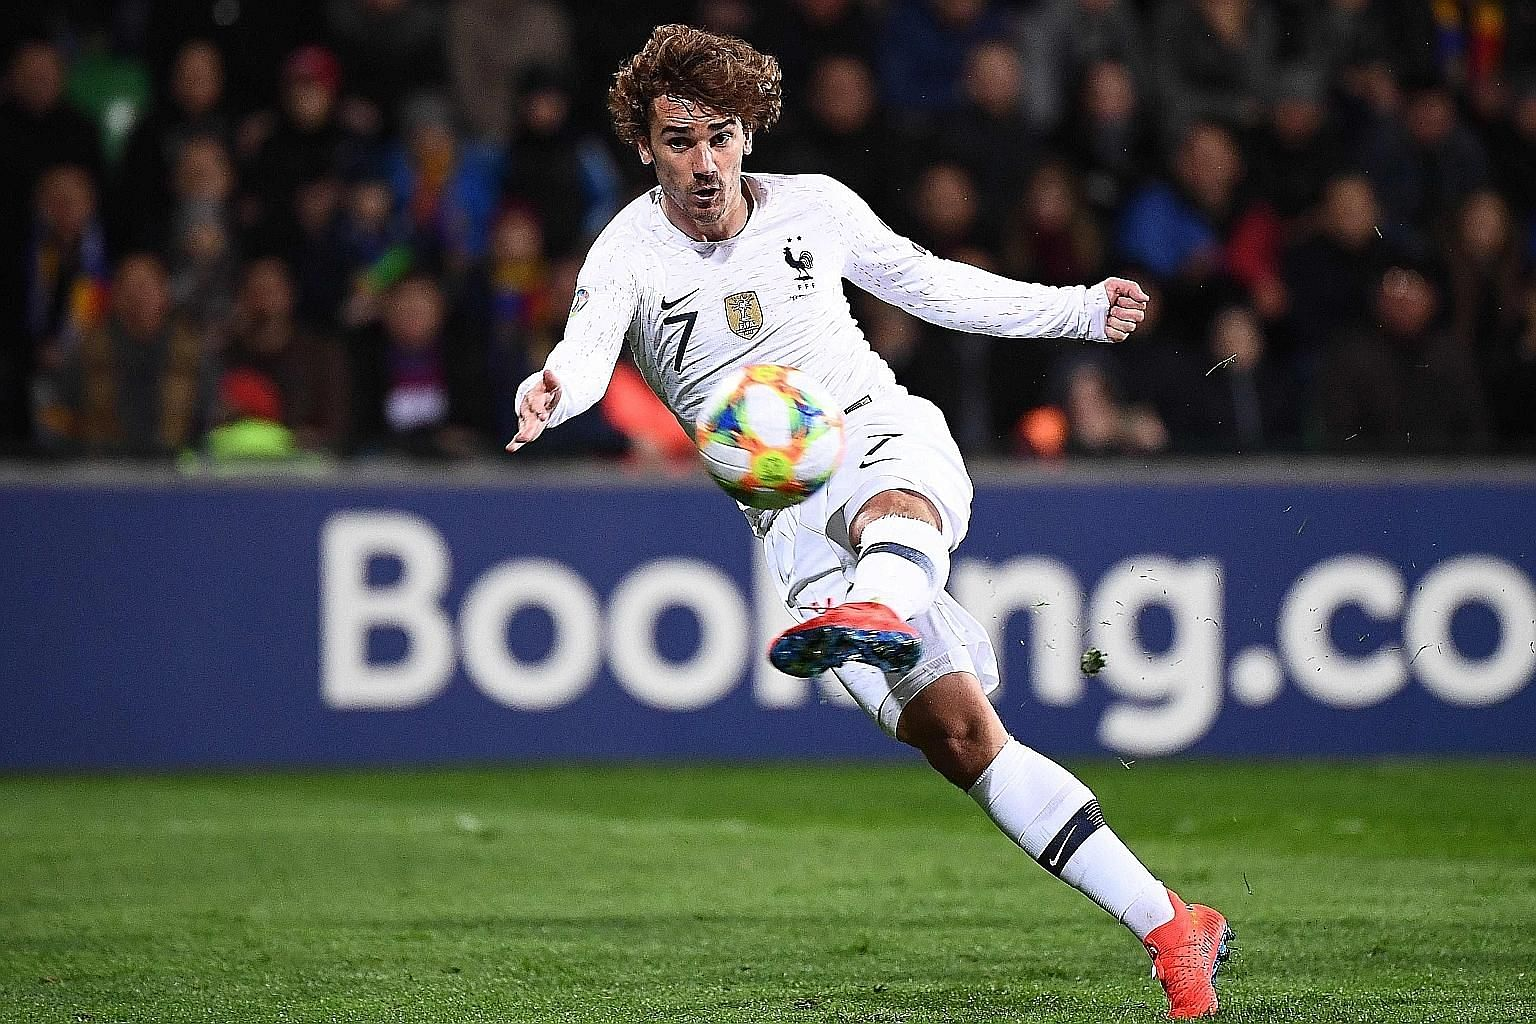 Antoine Griezmann opening the scoring in the 24th minute for France against Moldova on Friday. Three minutes later, he crossed for Raphael Varane to double the advantage.